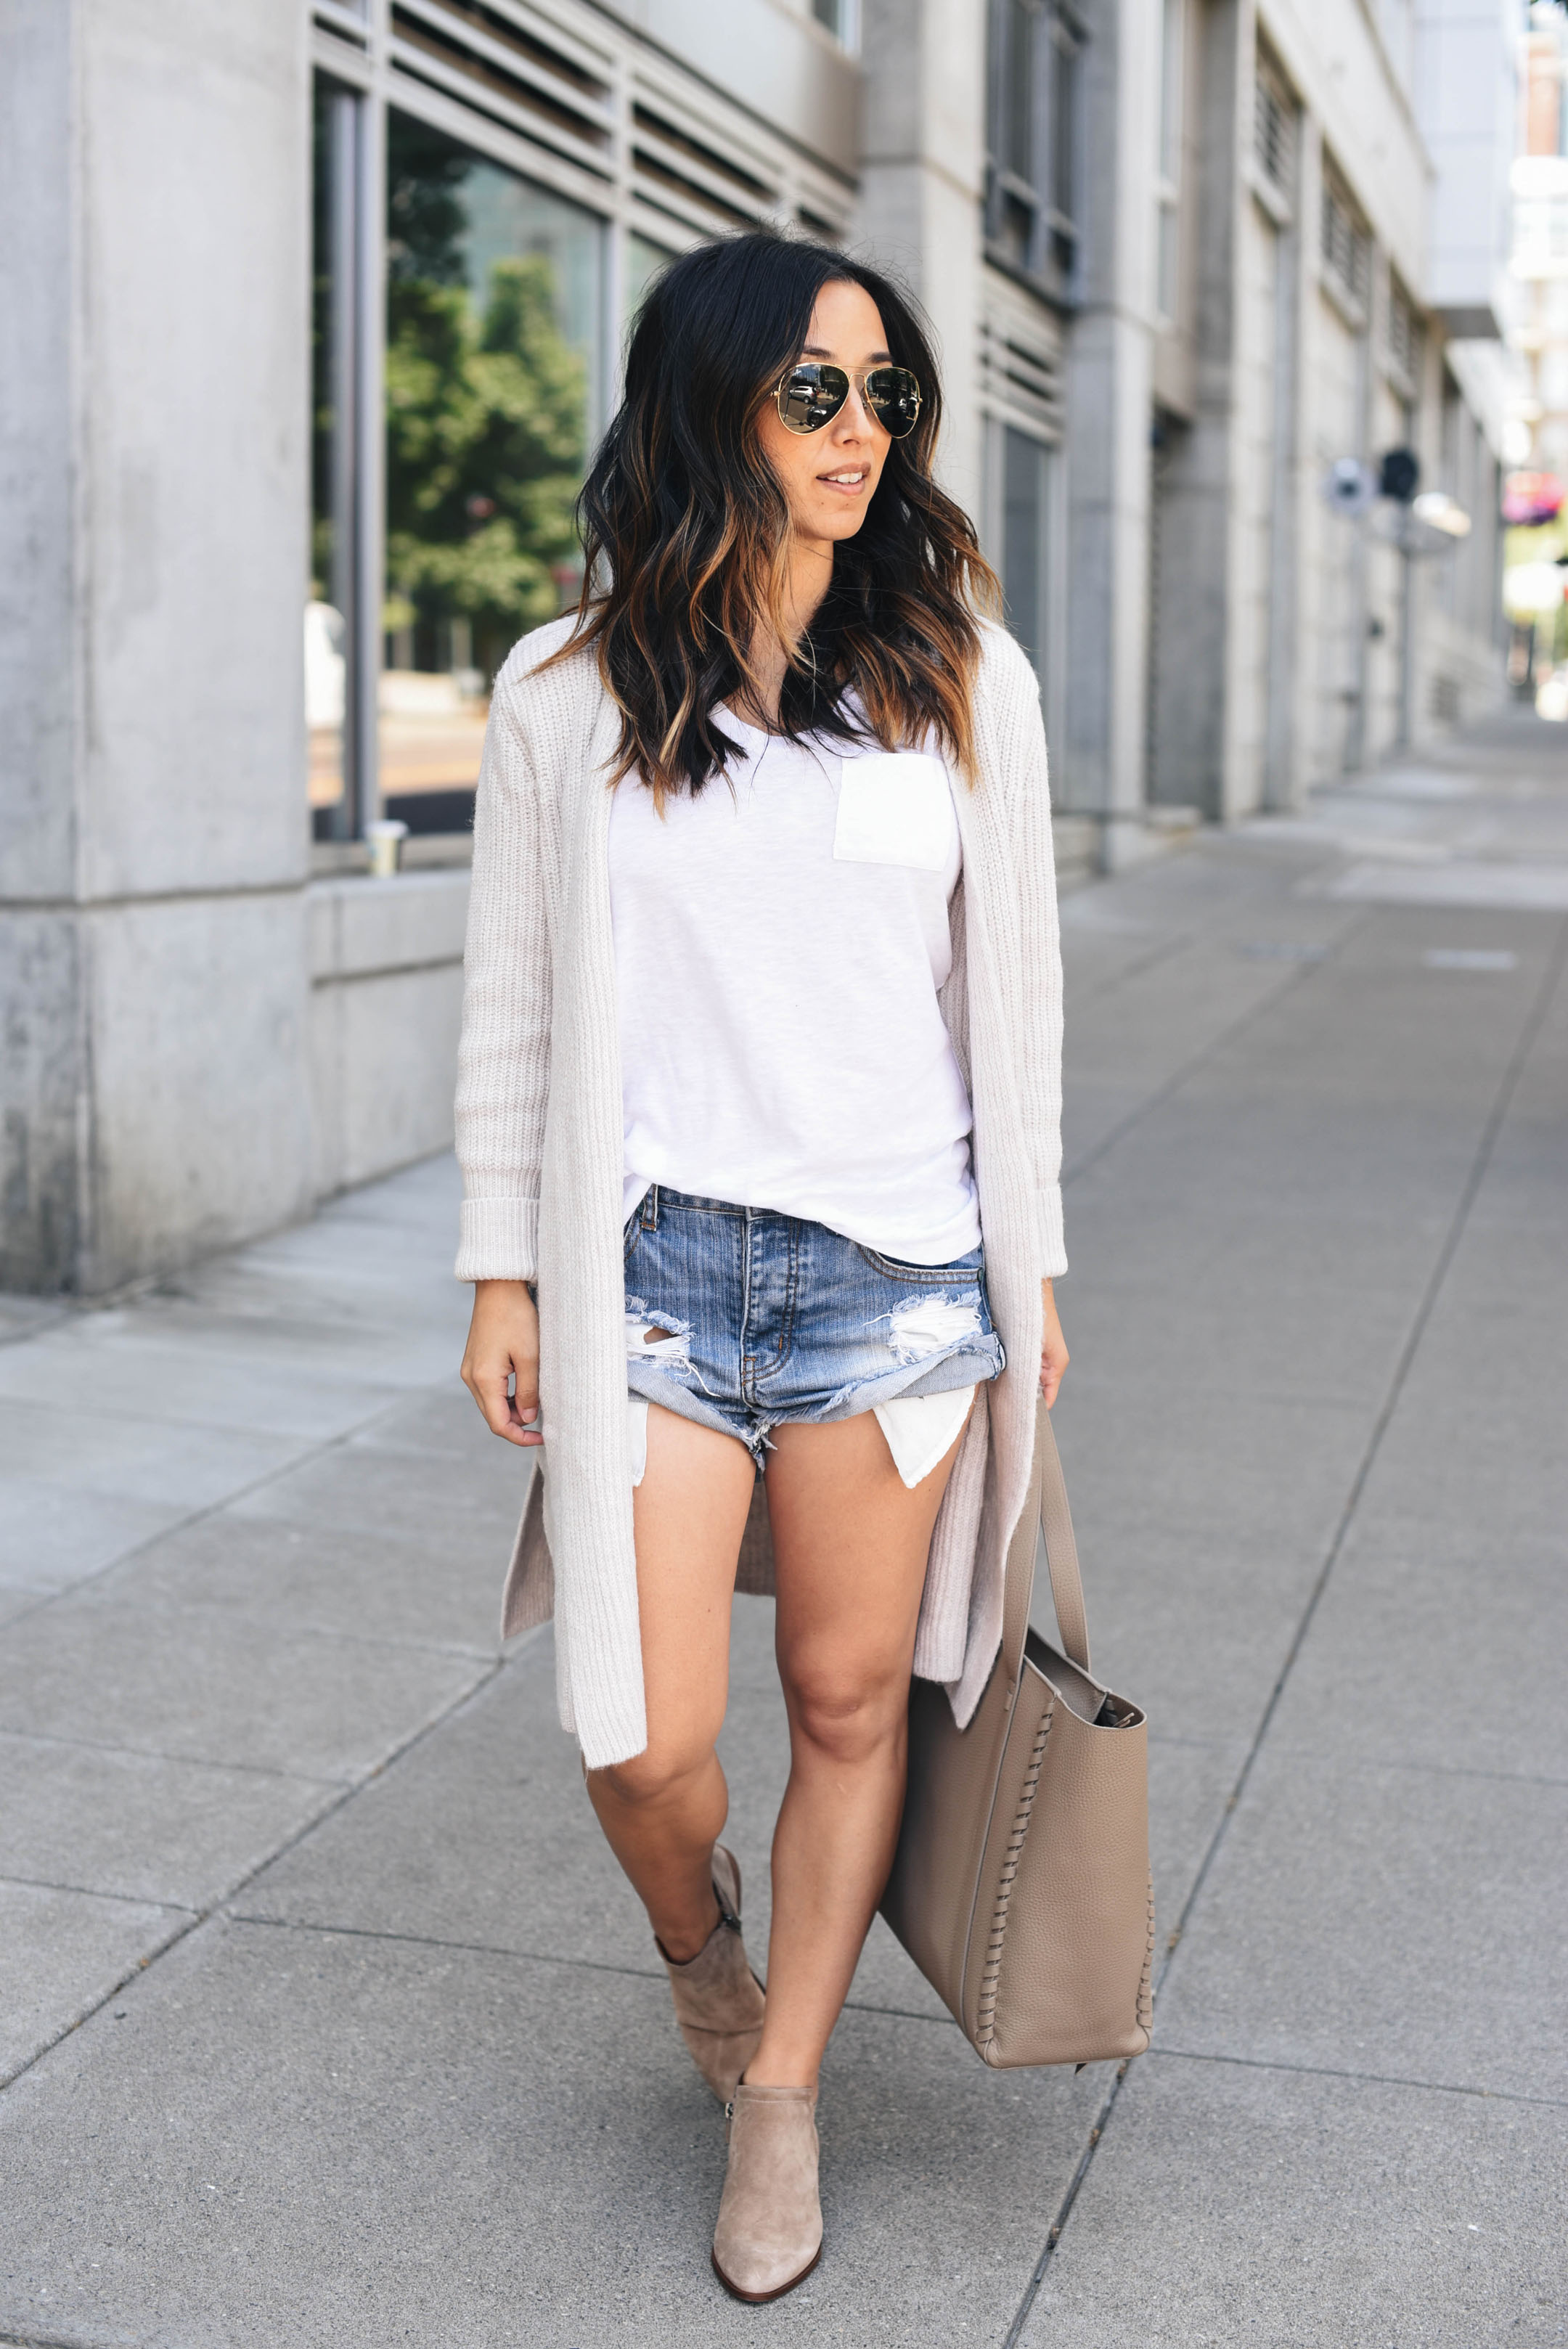 Cardigan, shorts, and booties